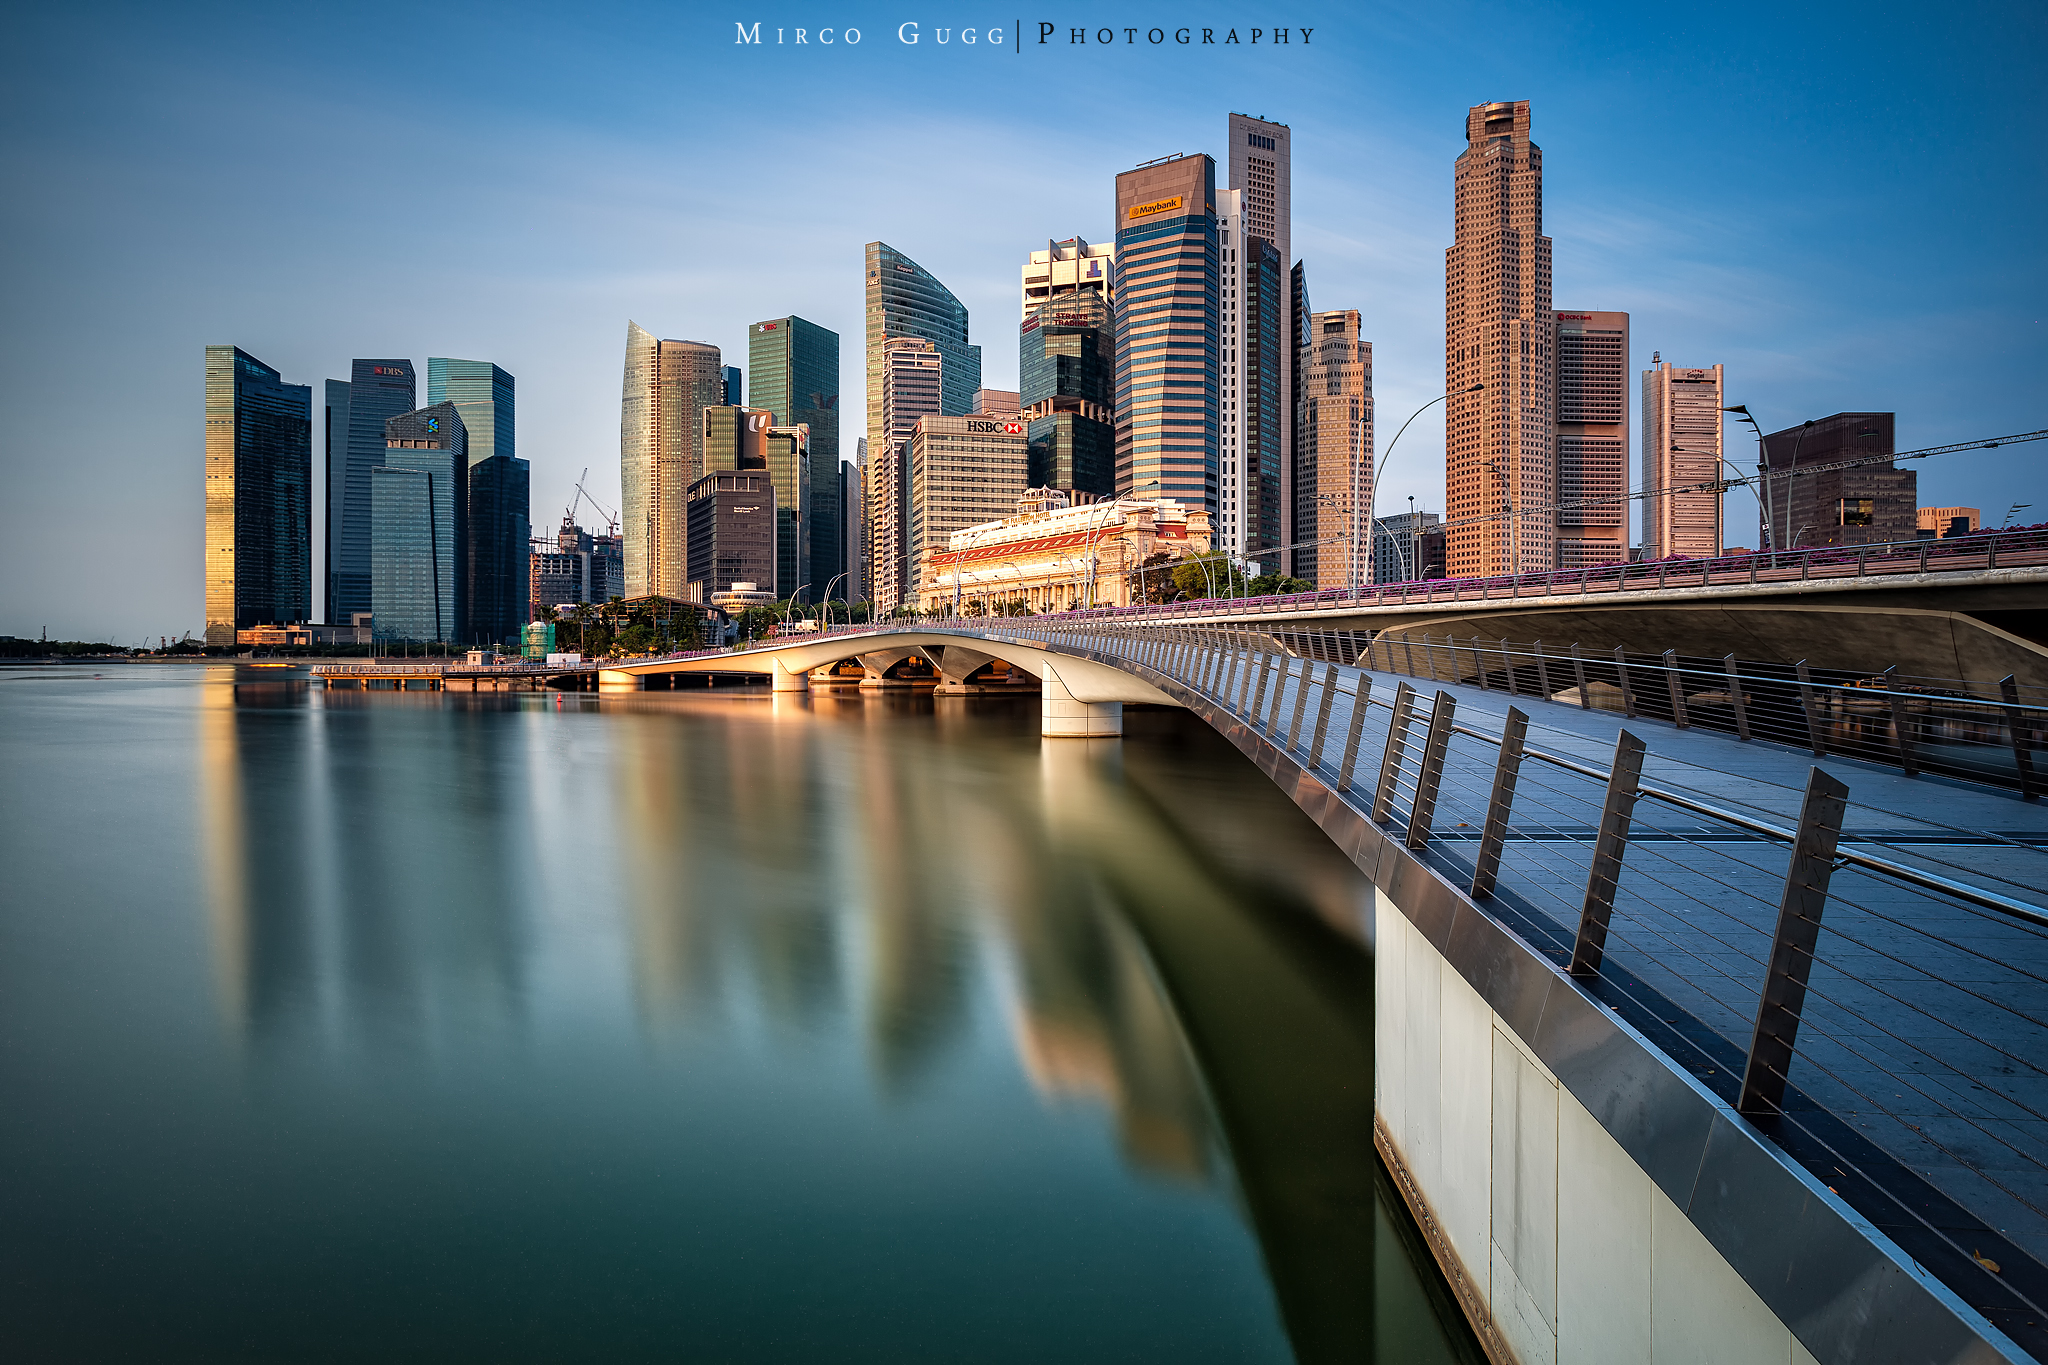 Financial District with Jubilee Bridge, Singapore